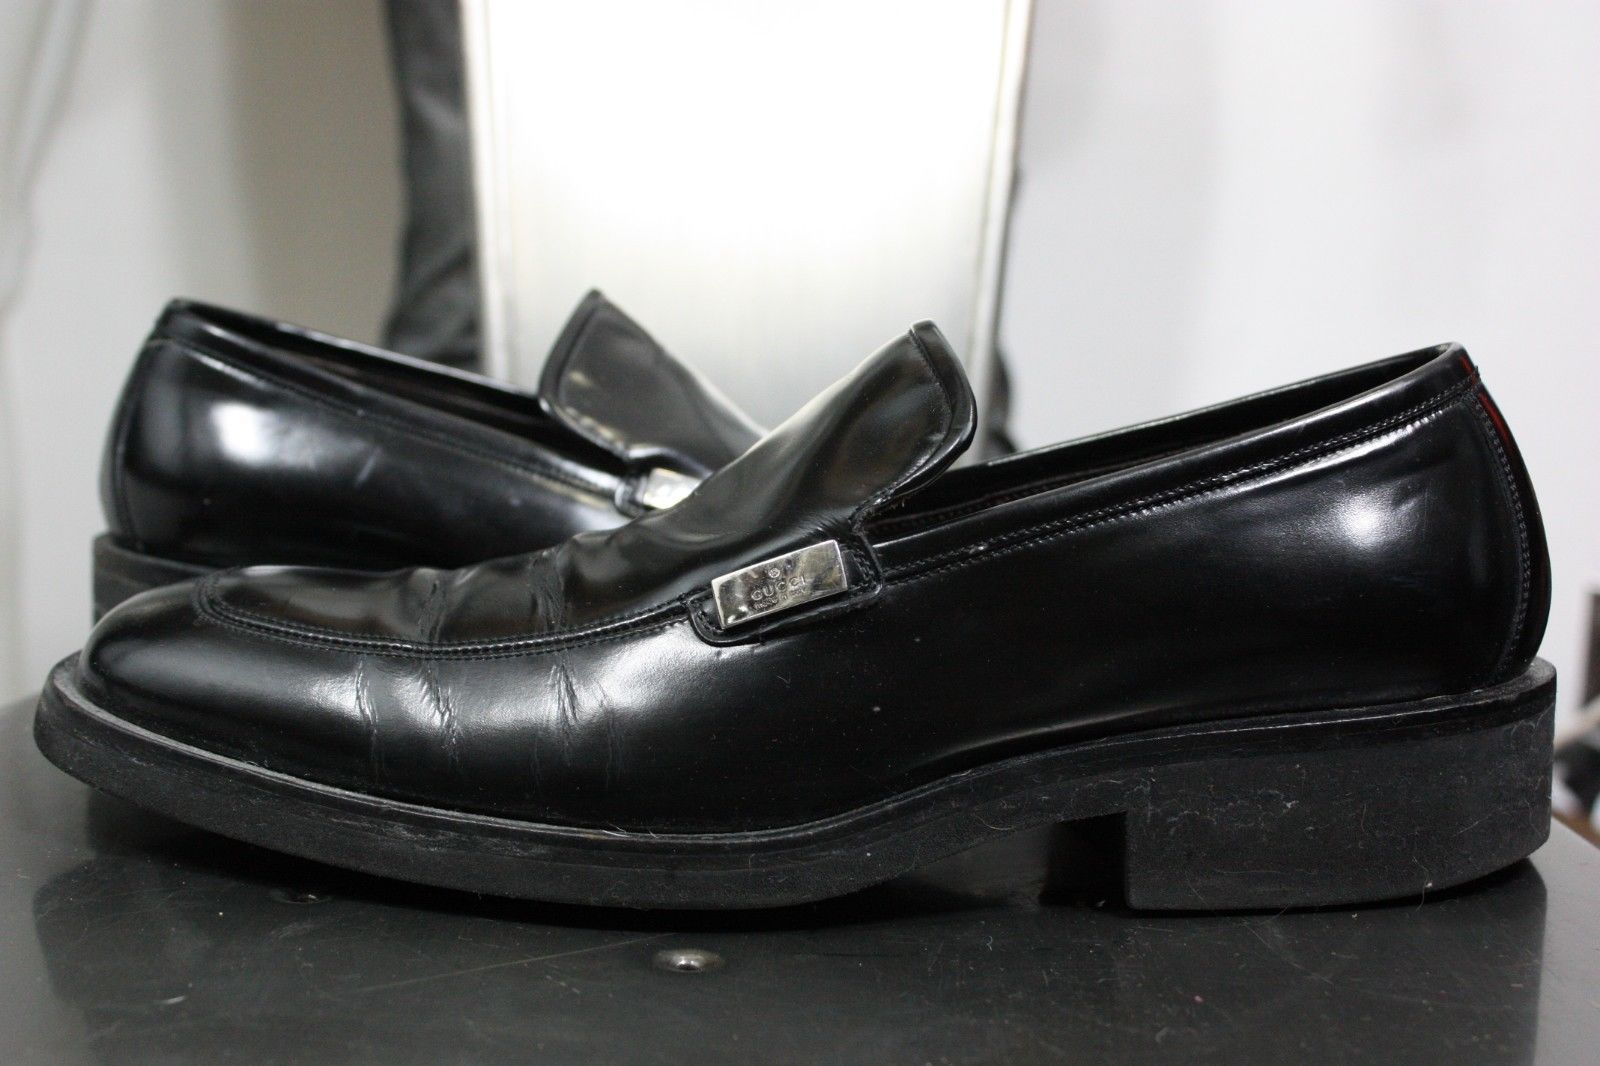 766056391 Gucci patent leather loafers 8 D shoes black vintage 90 s made in Italy